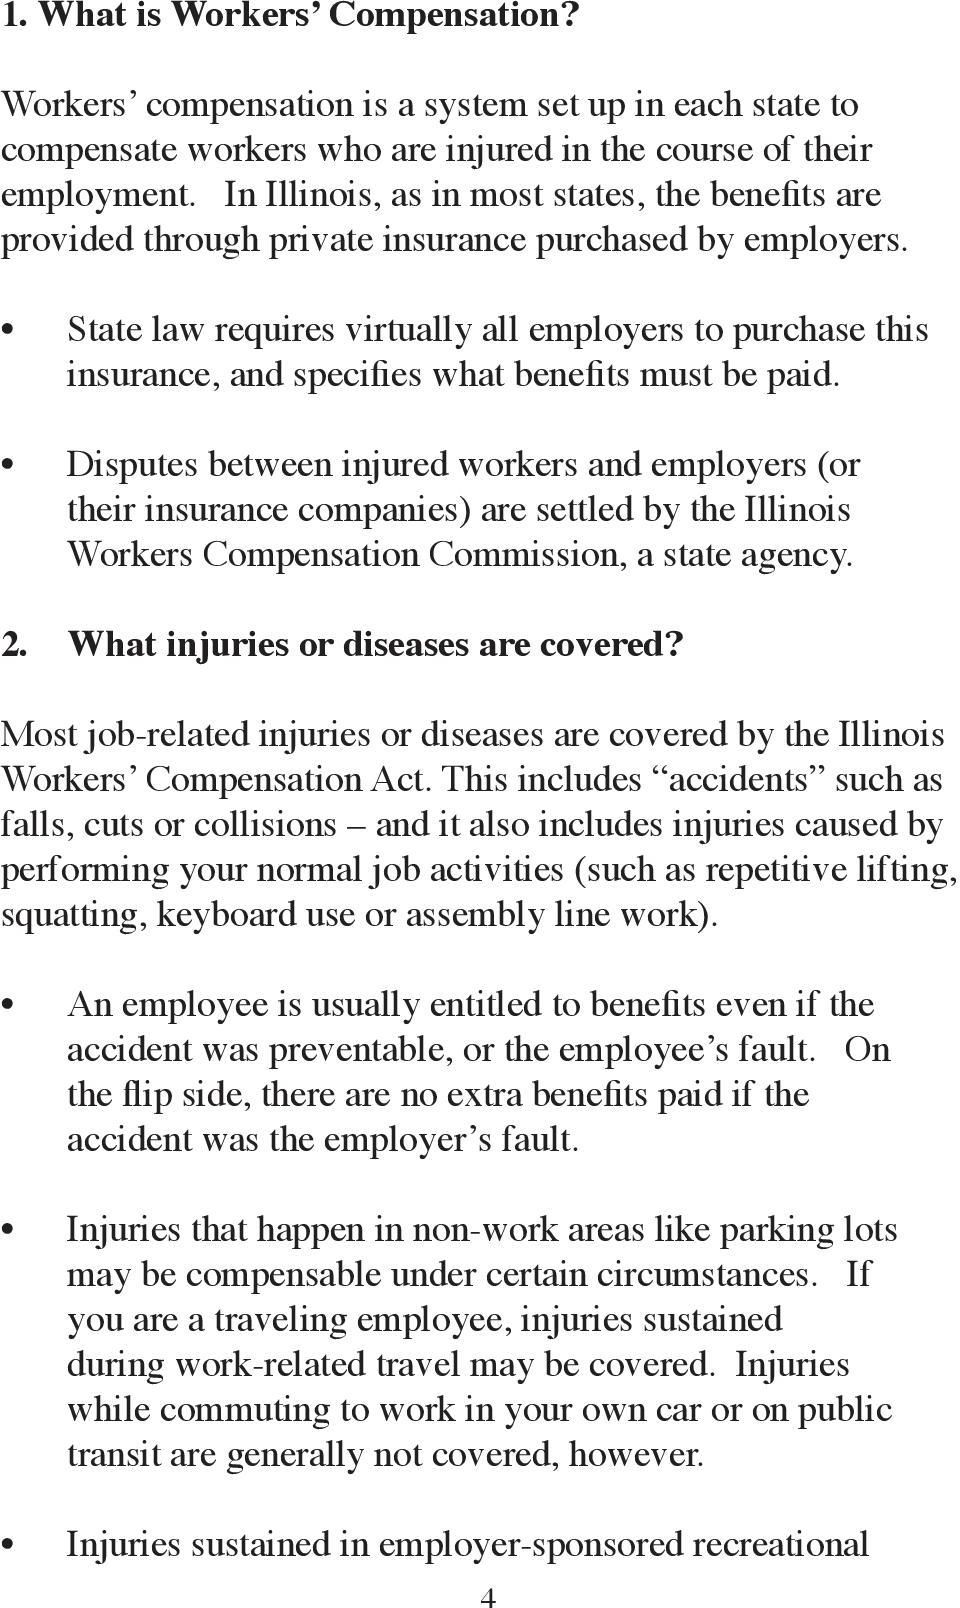 State law requires virtually all employers to purchase this insurance, and specifies what benefits must be paid.